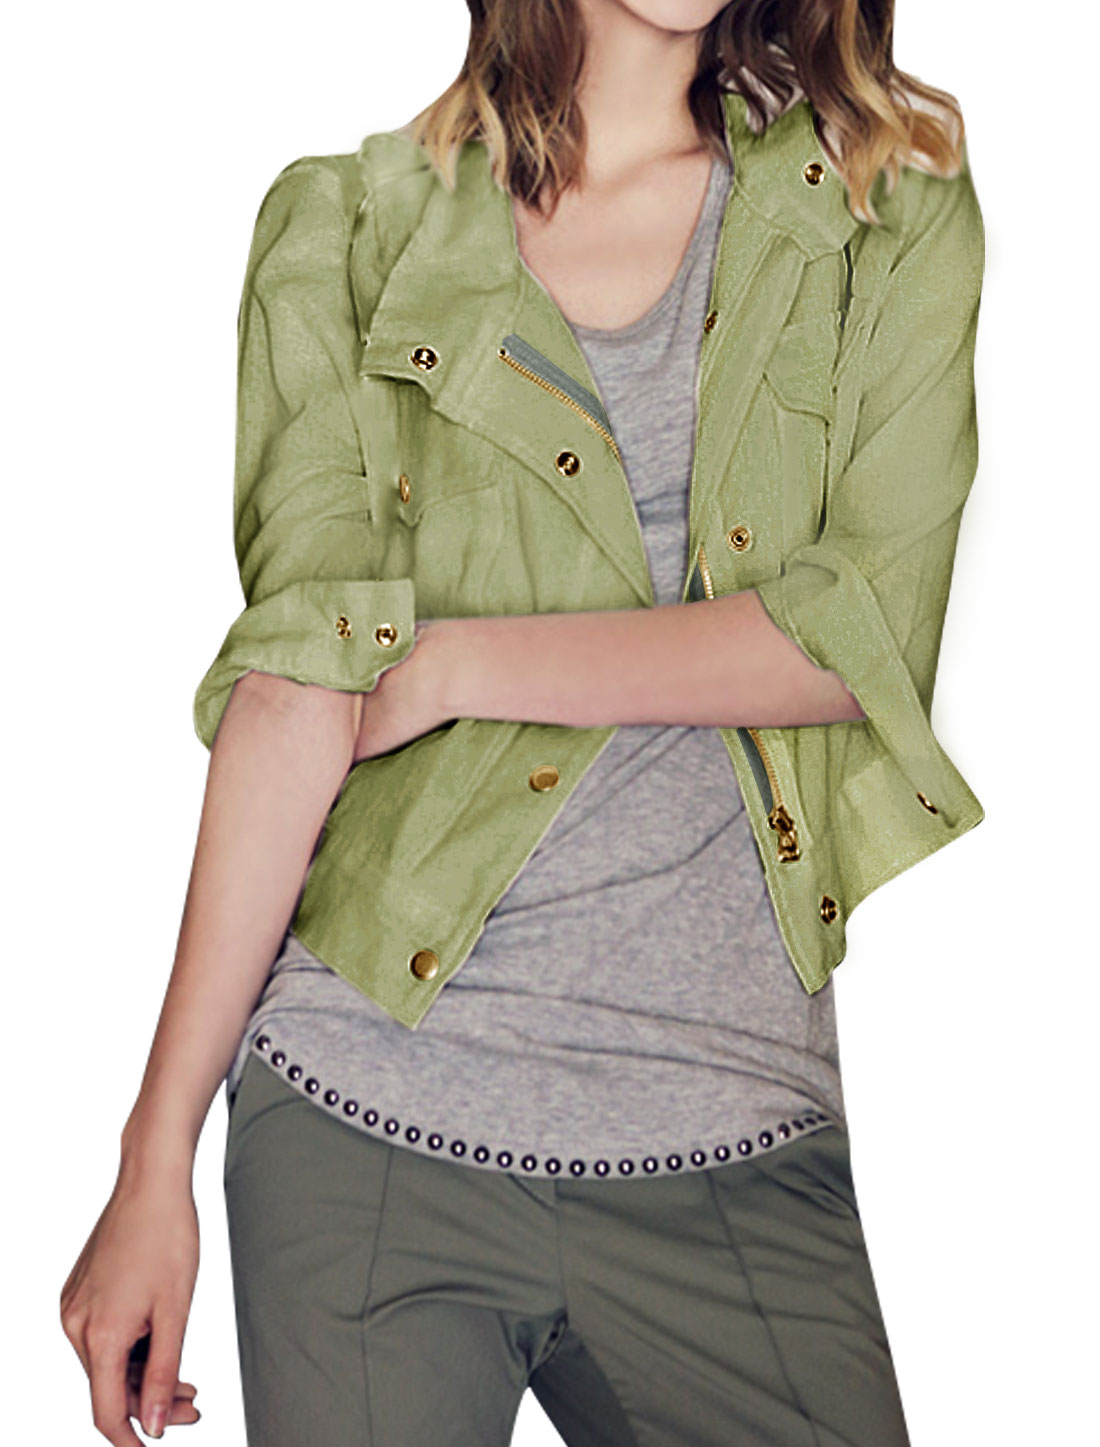 Ladies Collared Button Zip Crop Jacket w Pockets Green XS